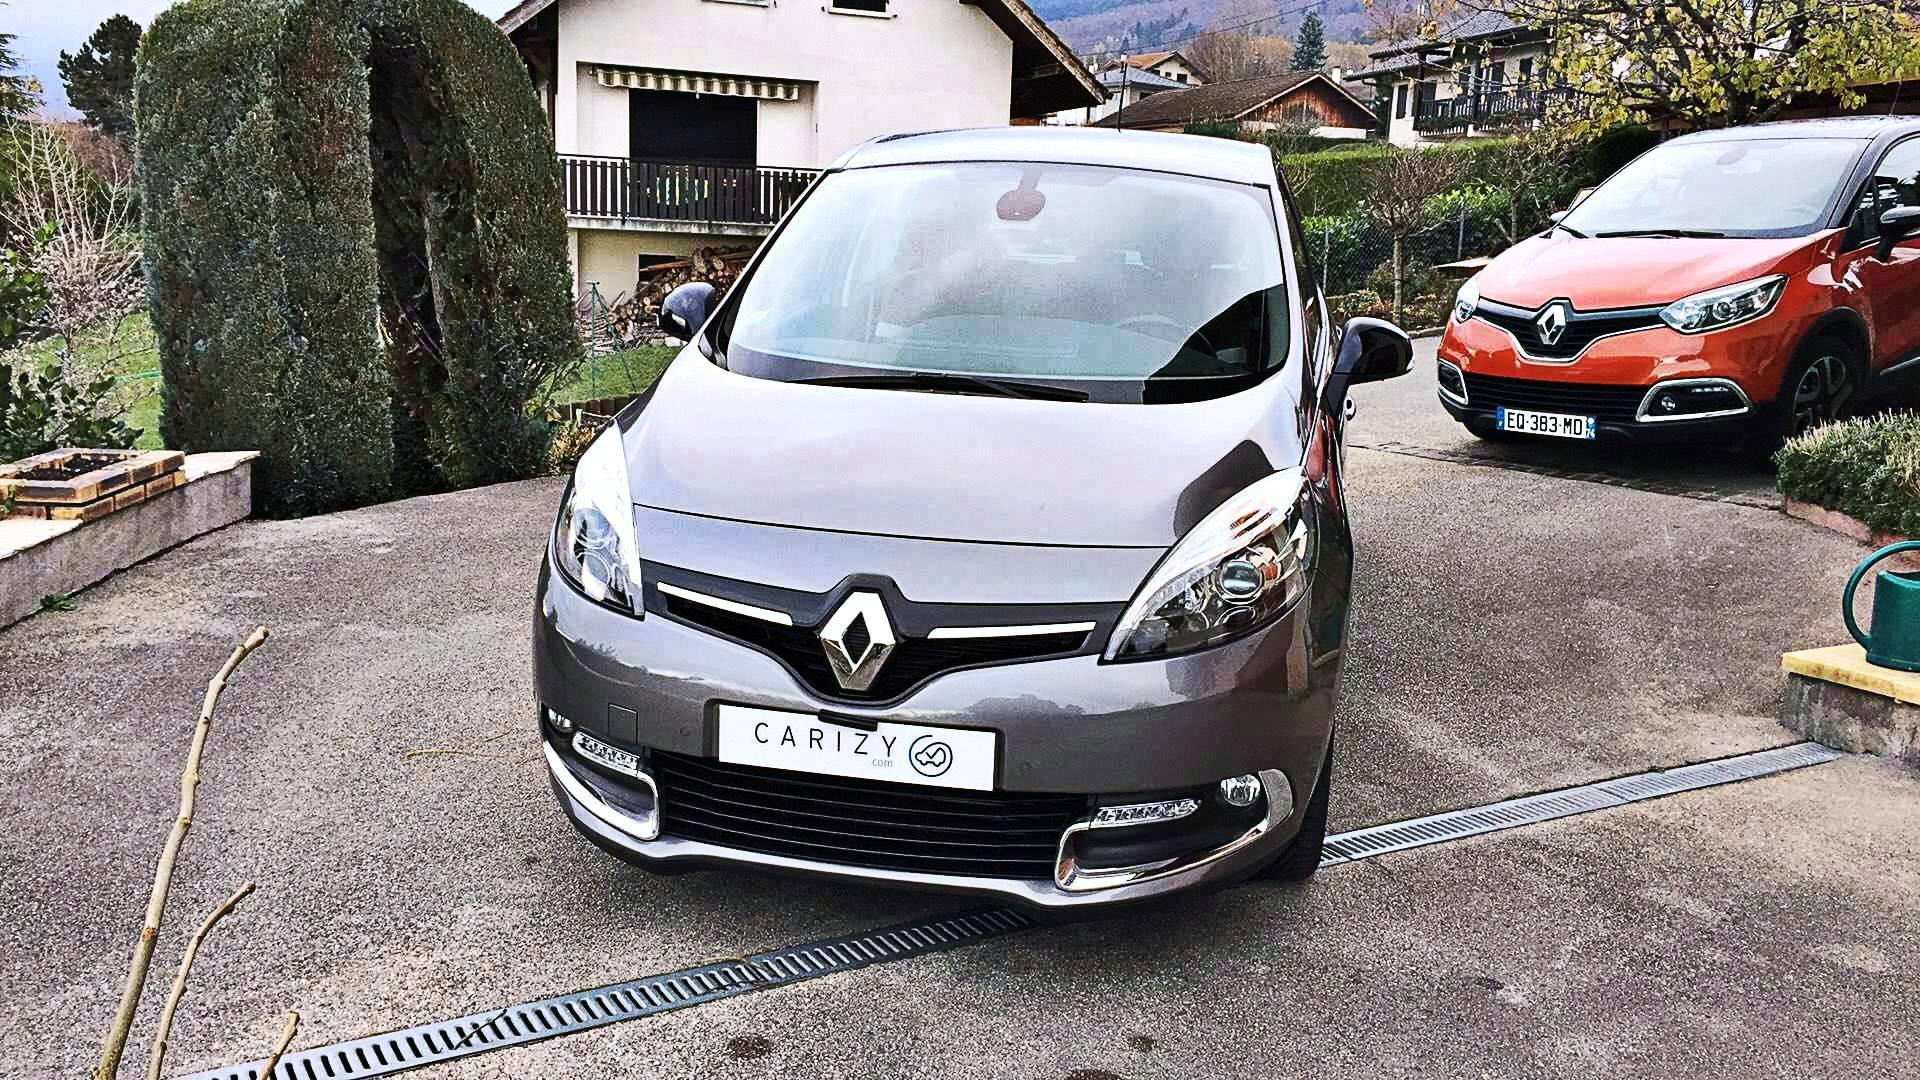 renault scenic d 39 occasion 1 5 dci 110 energy bose bonneville carizy. Black Bedroom Furniture Sets. Home Design Ideas